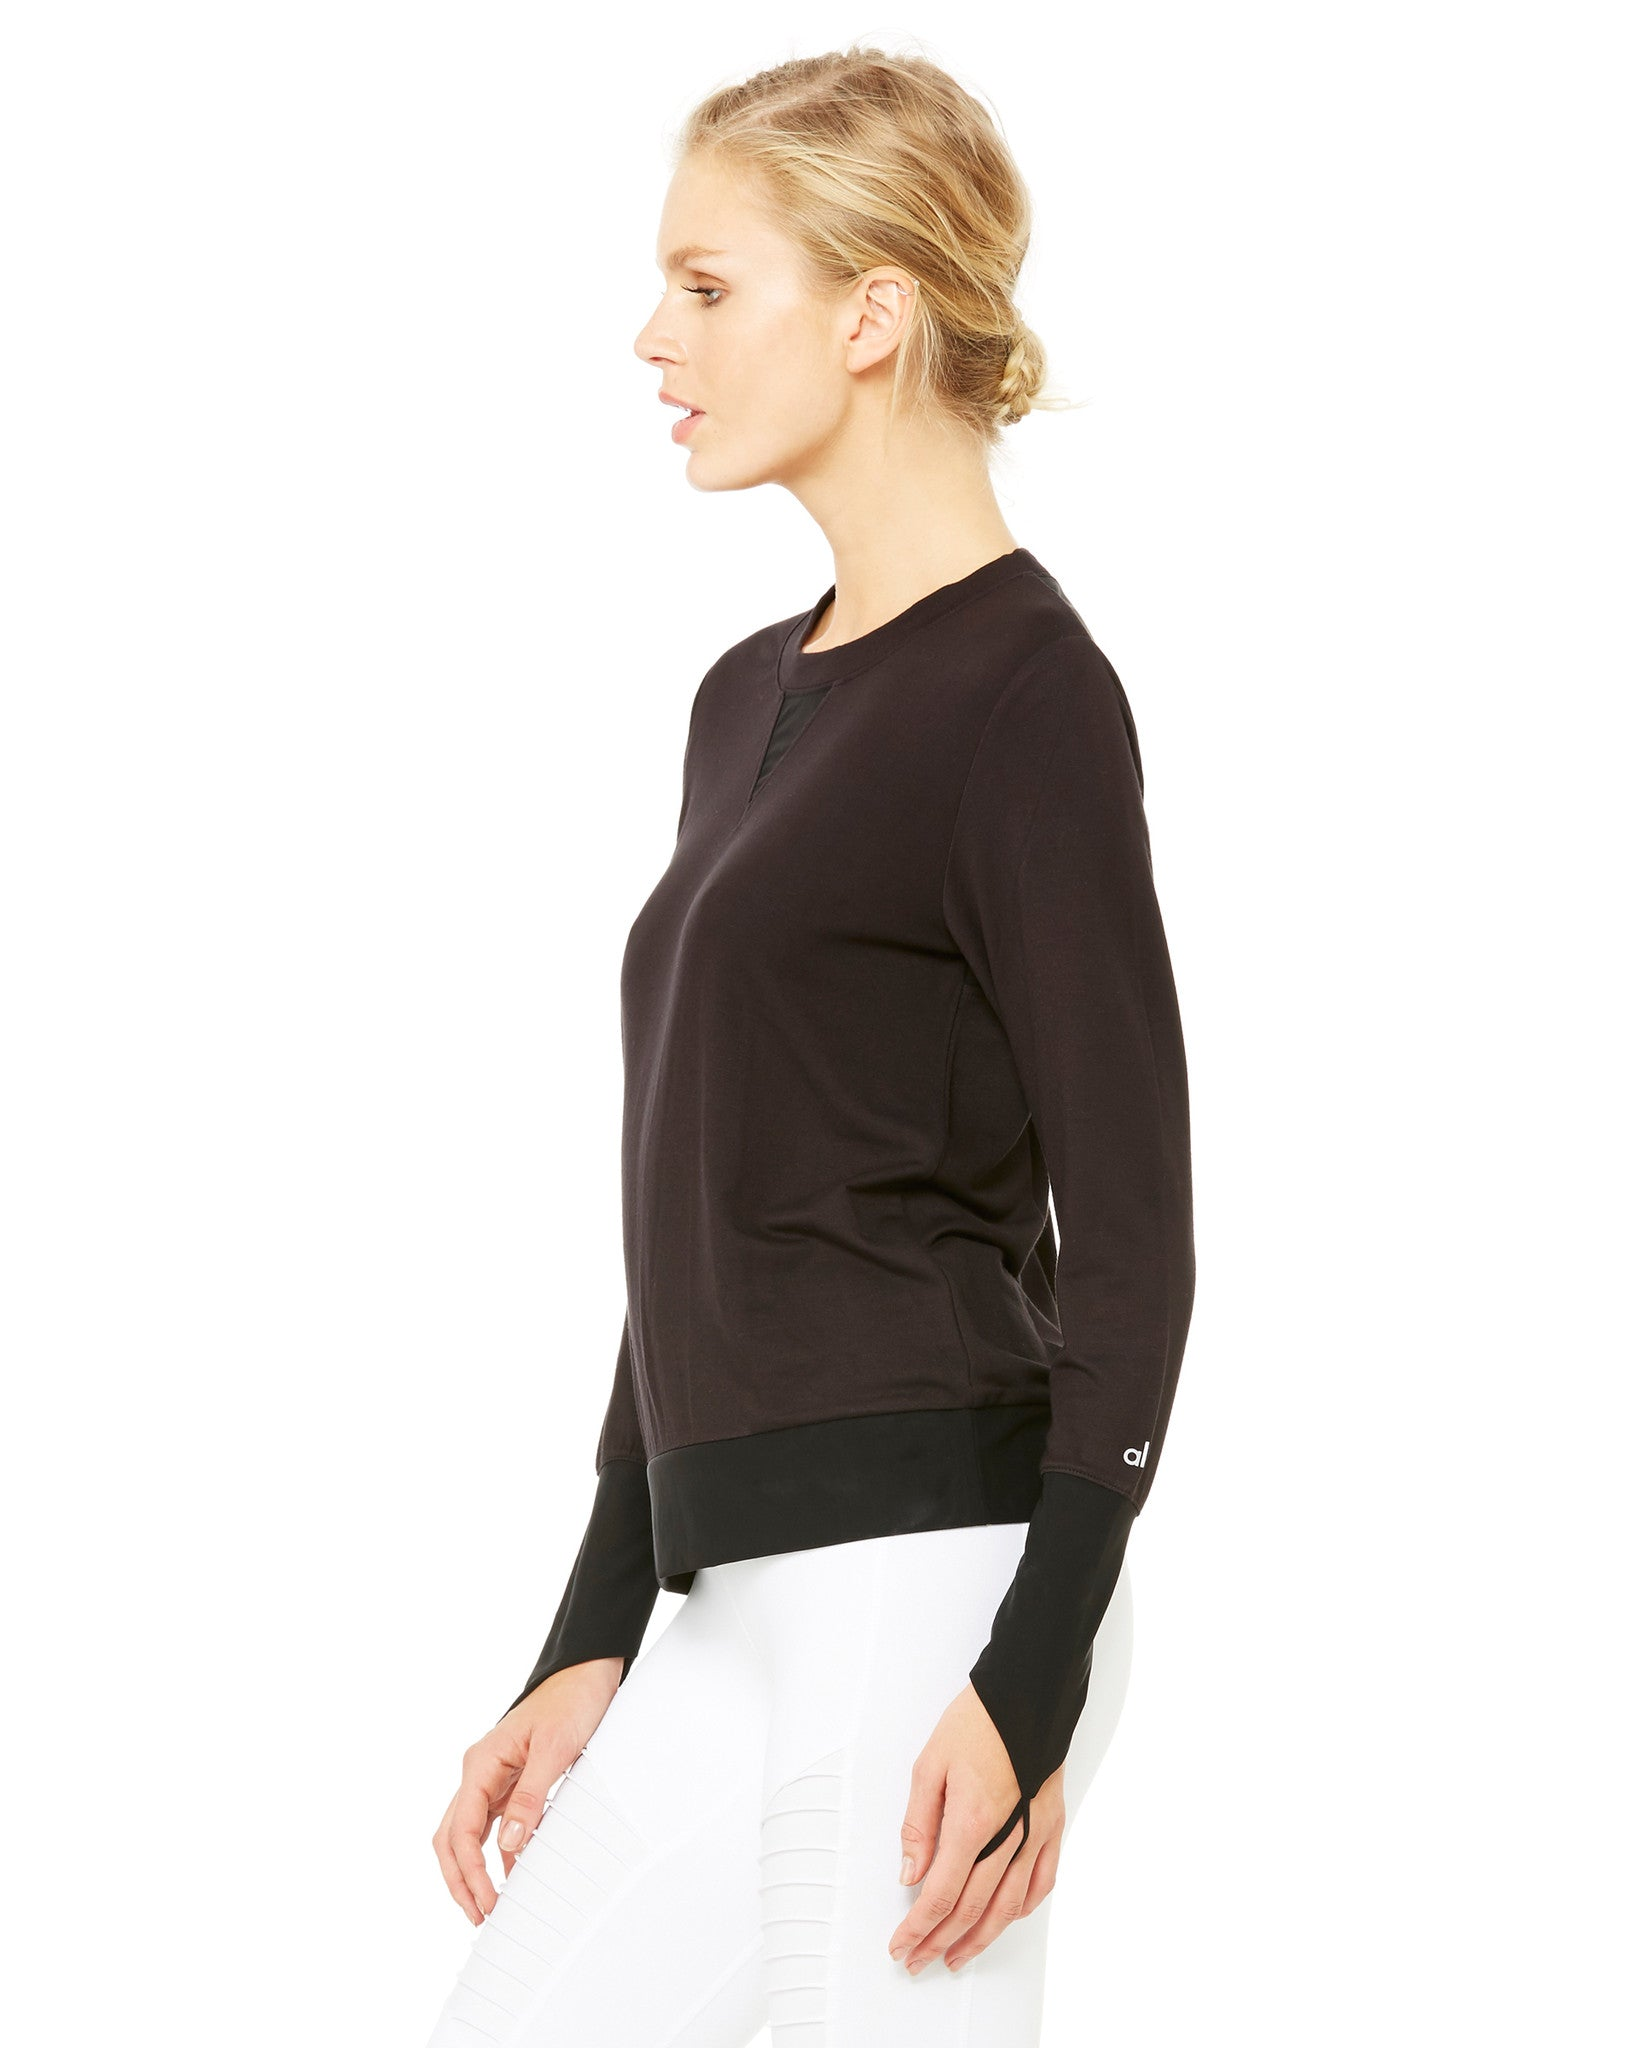 Serene Long Sleeve Top in Black - AMAIA - 3